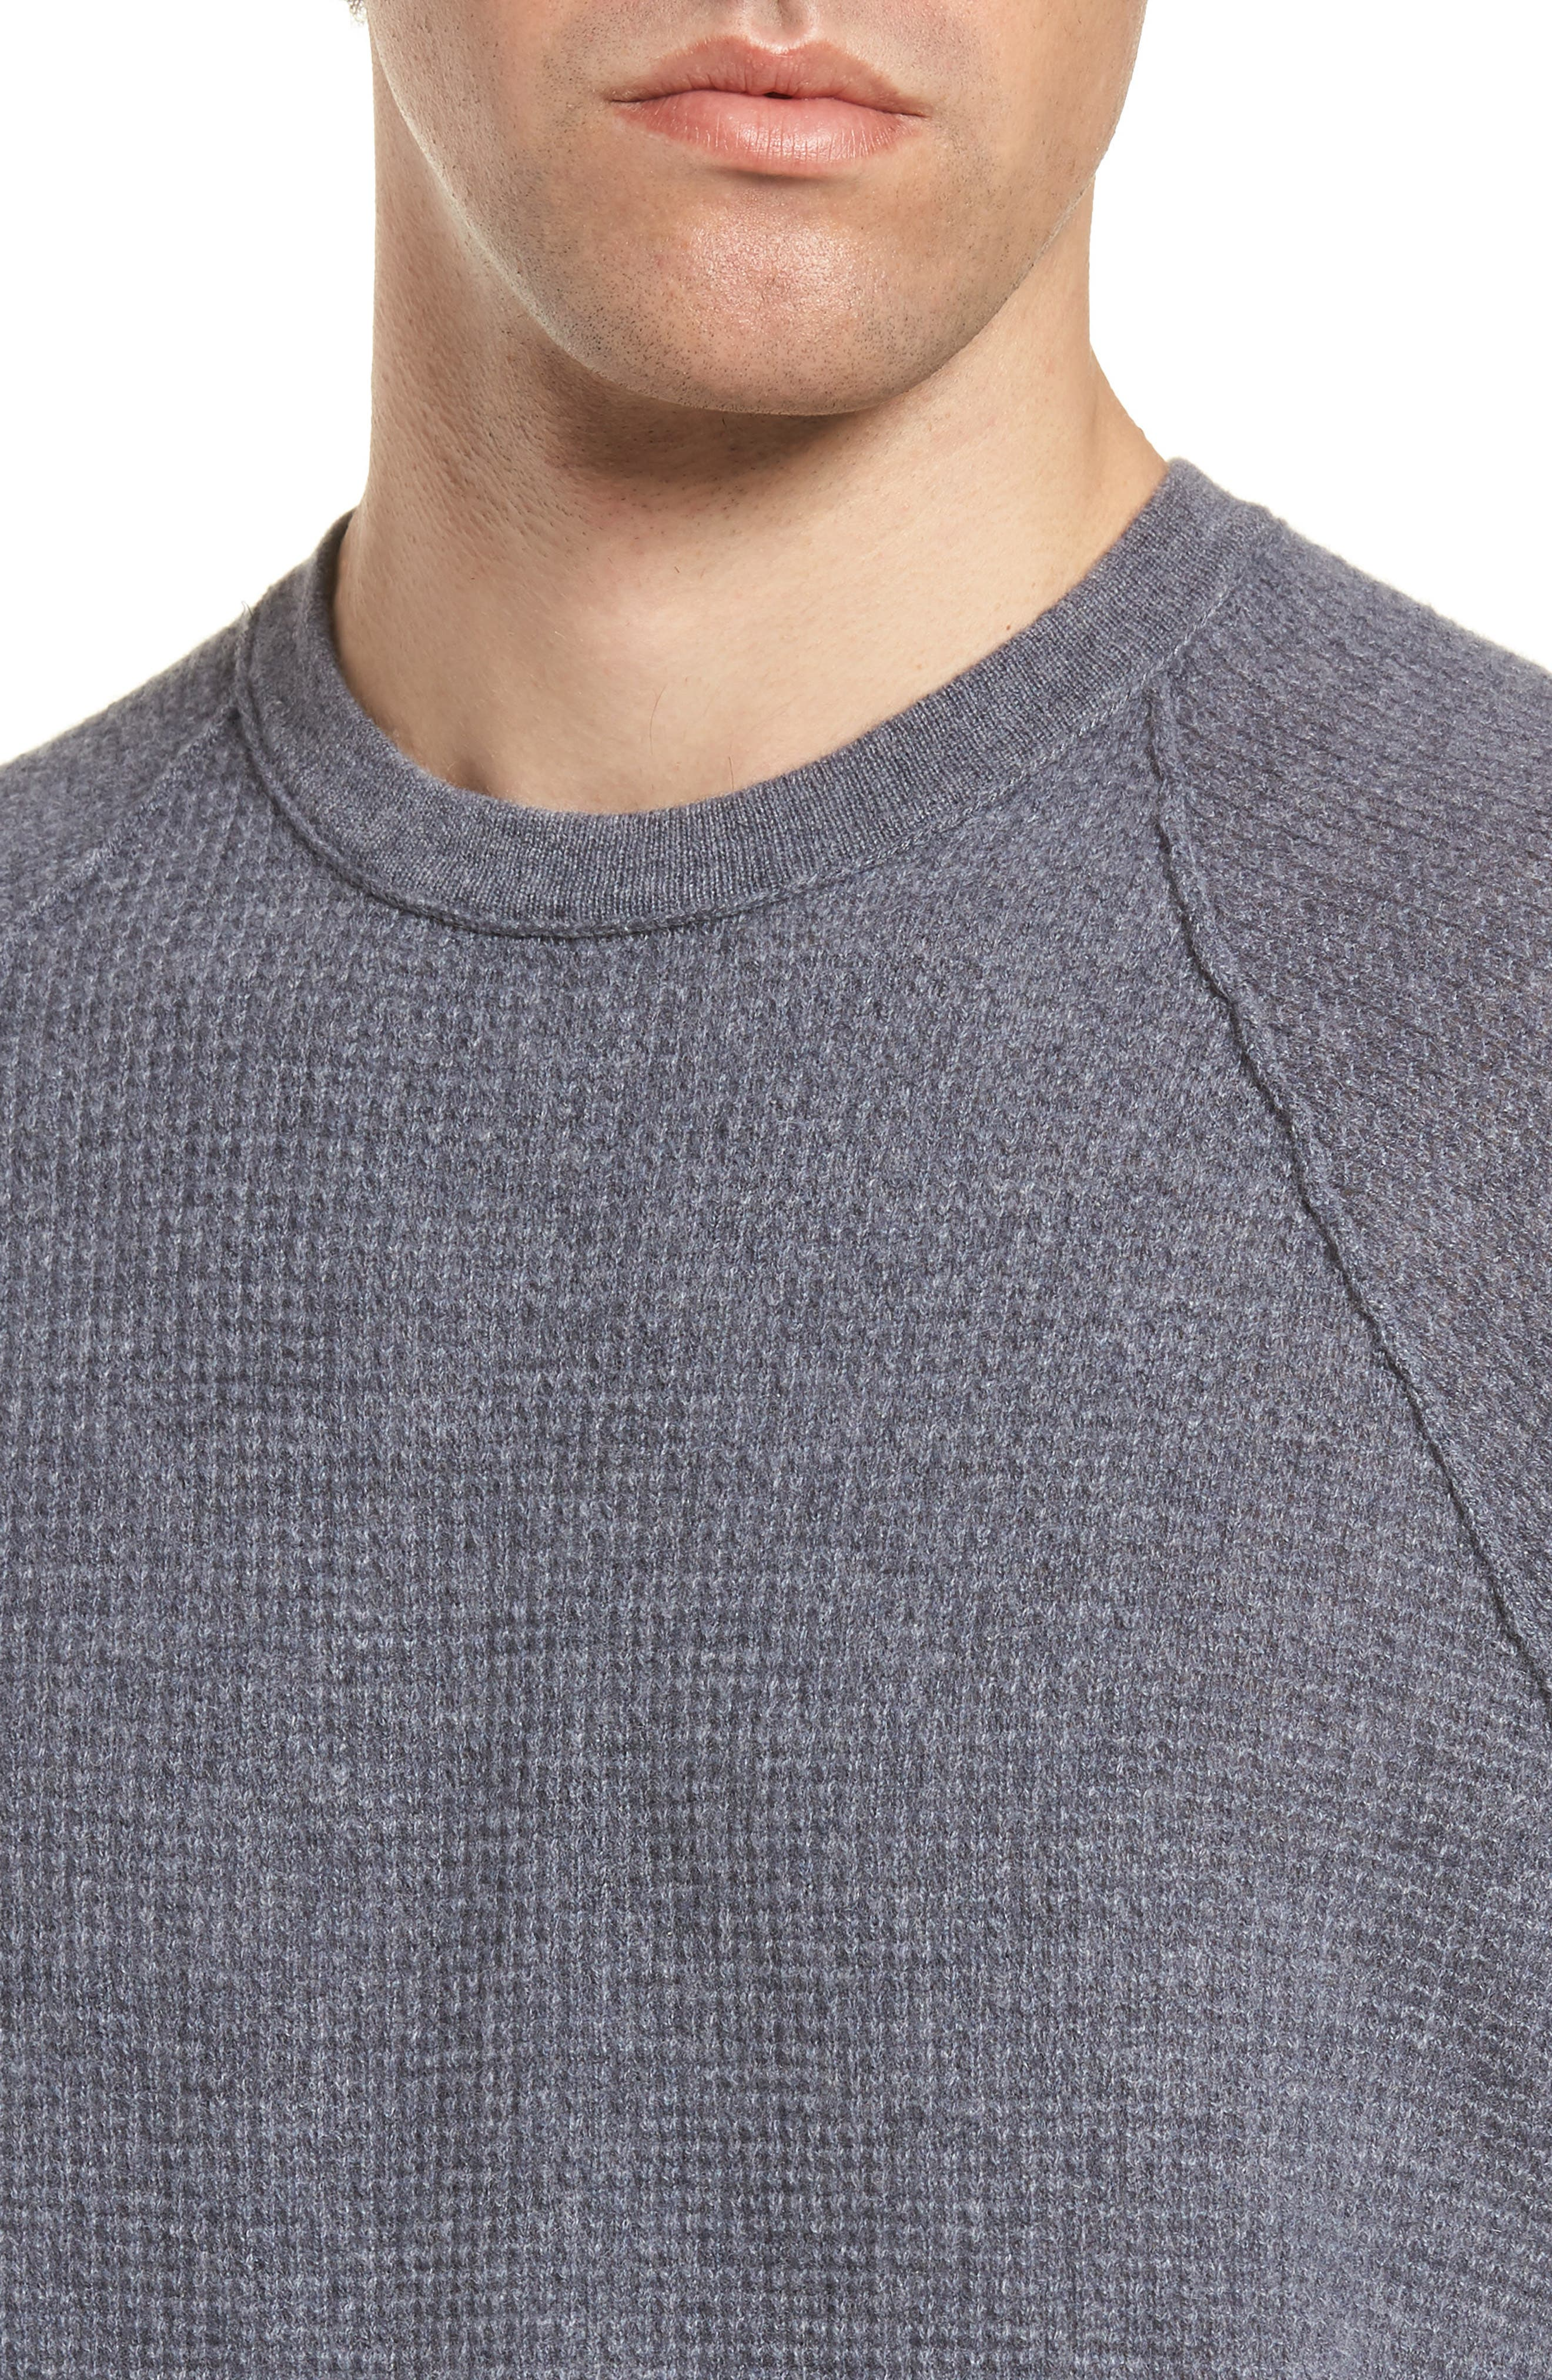 Thermal Cashmere Sweater,                             Alternate thumbnail 4, color,                             077